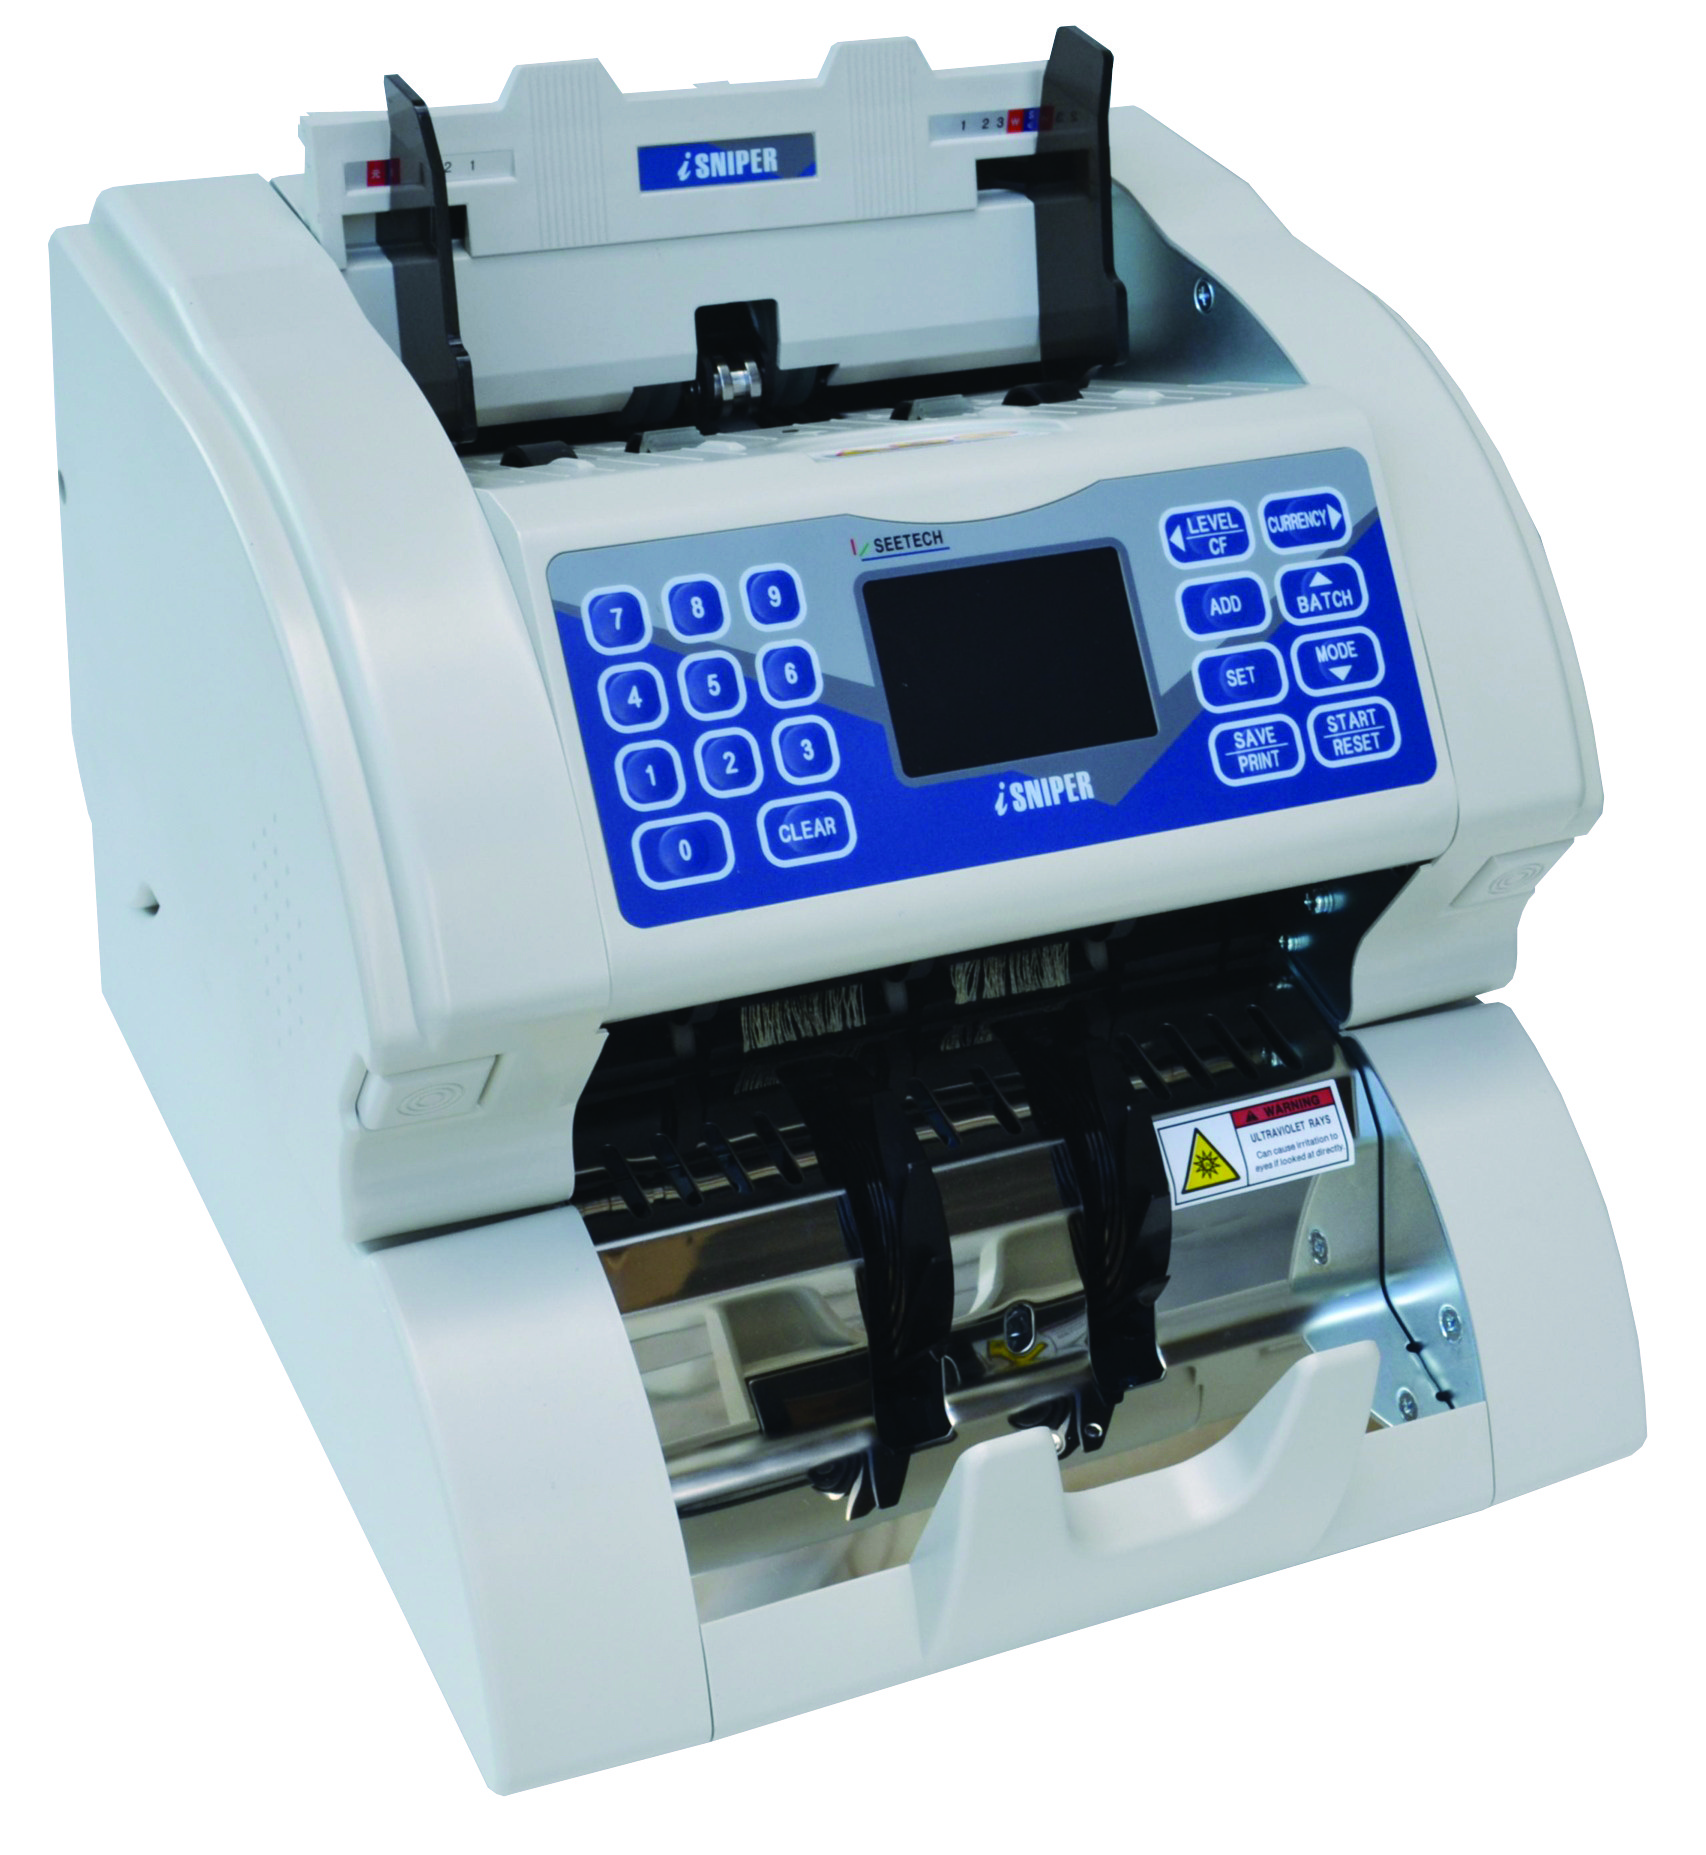 Cash Counting Machine in Qatar, Ultra Violet Cash Counting